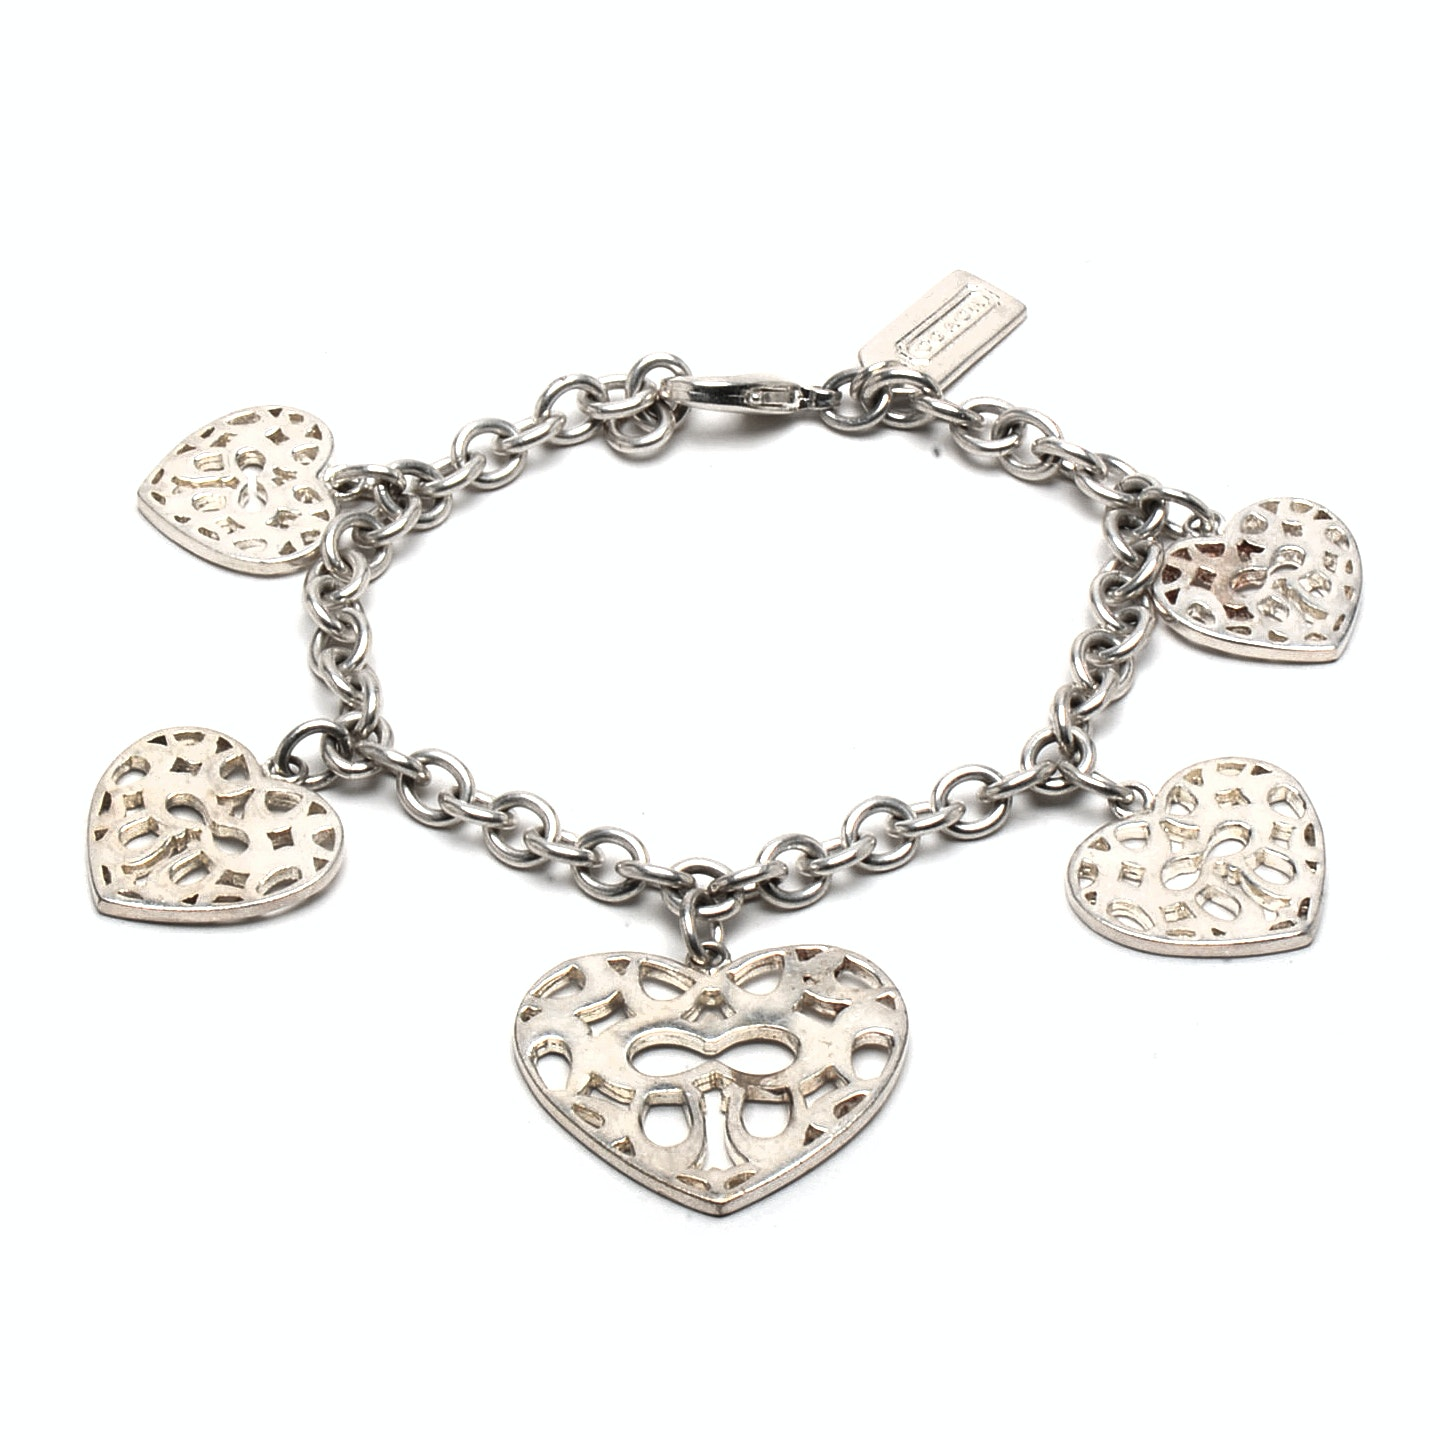 Coach Sterling Silver Bracelet with Heart-Shaped Charms : EBTH